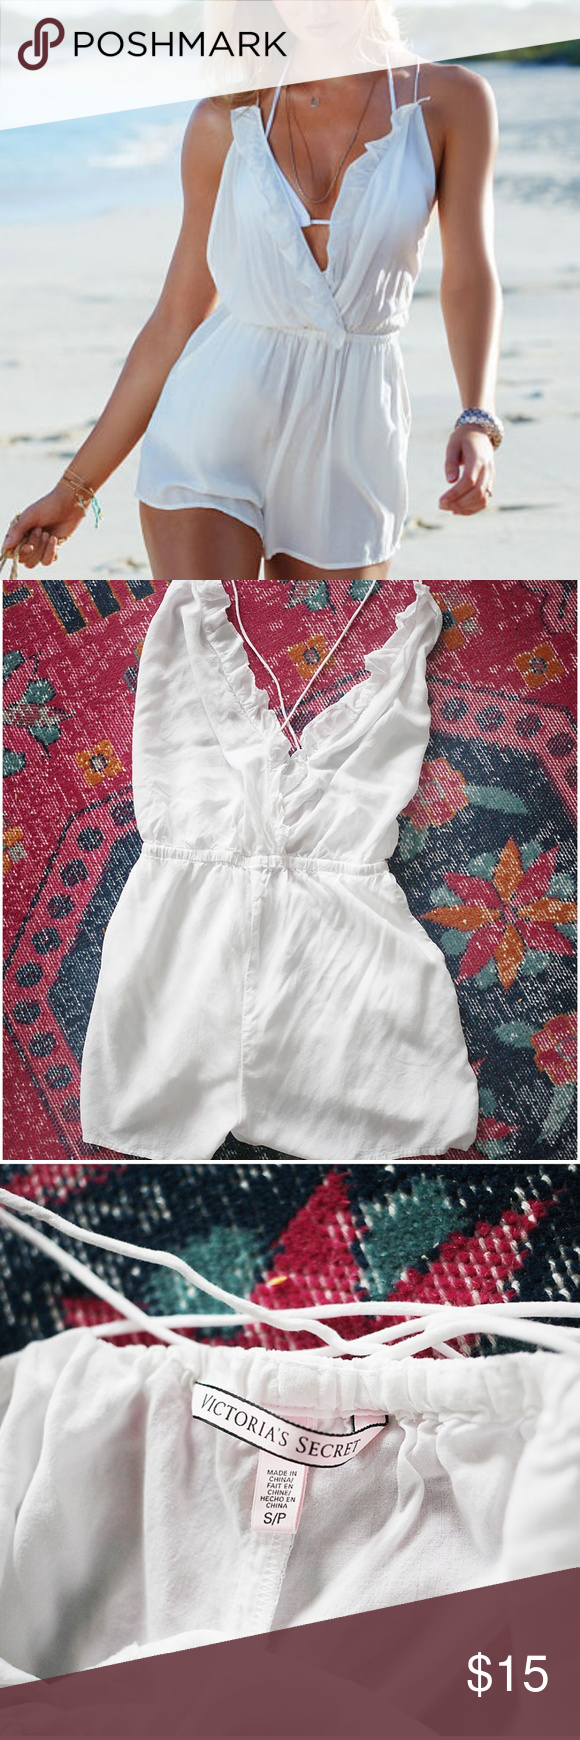 809f7fa5e12 Victoria s Sevret Ivory Ruffle Cover-Up Romper Absolutely adorable romper  in beautiful condition. One